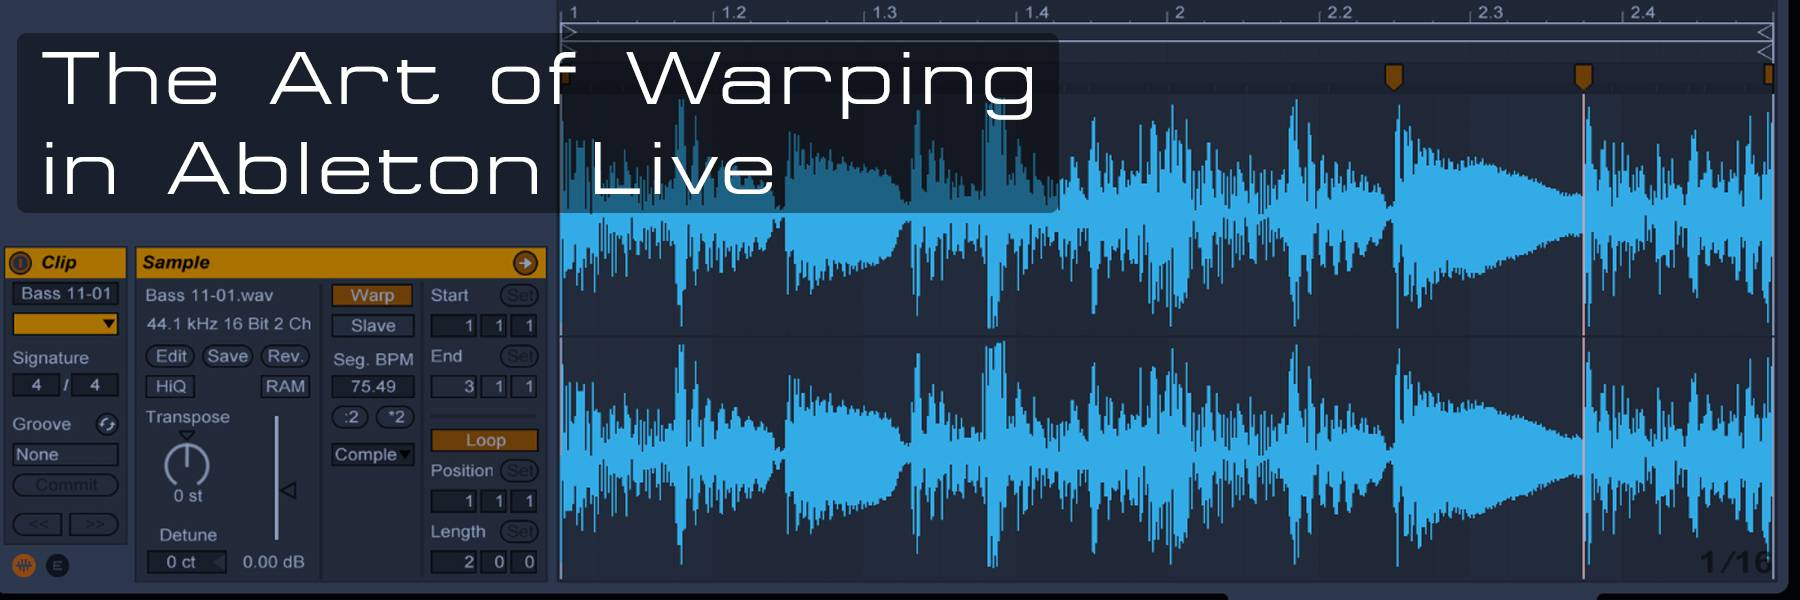 The Art of Warping and Remixing in Ableton Live